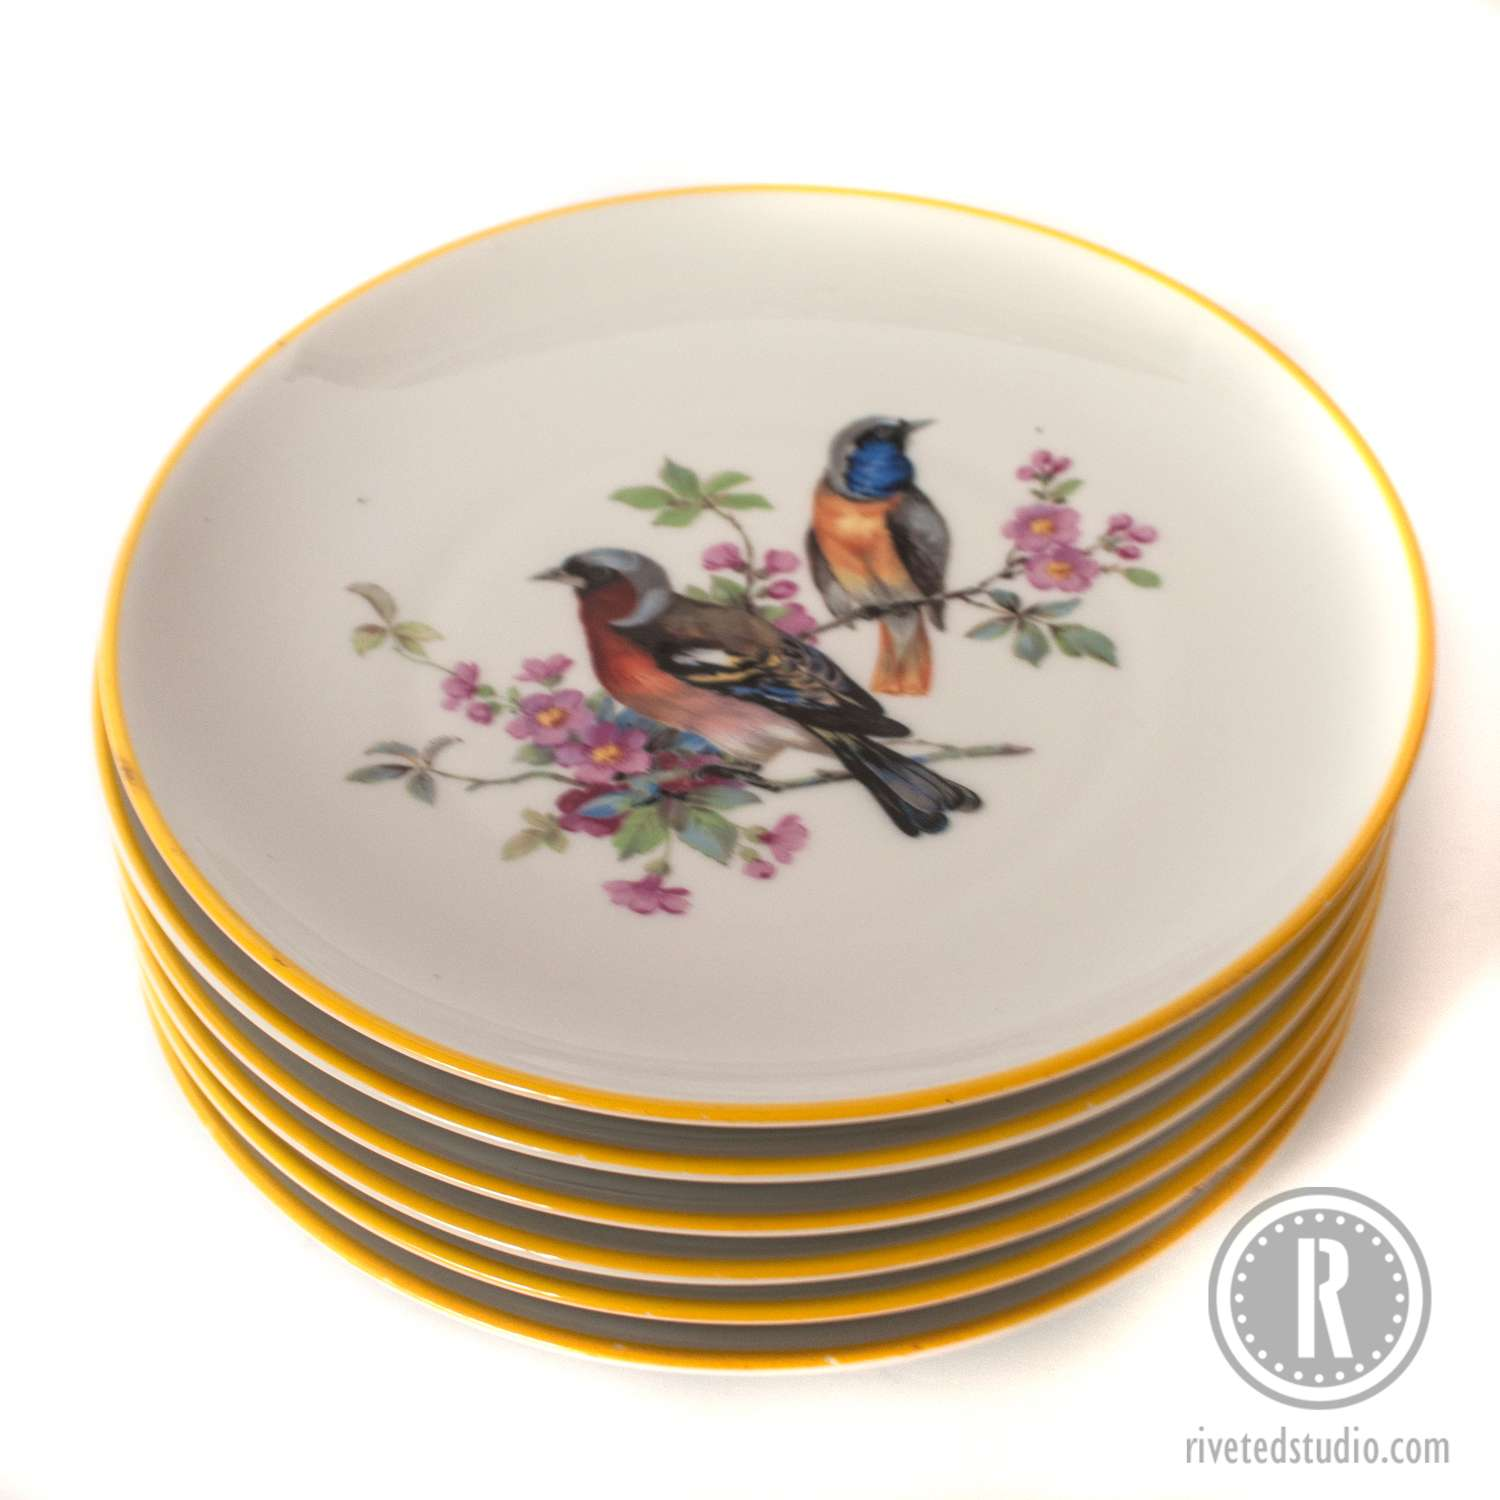 Stack of bird plates